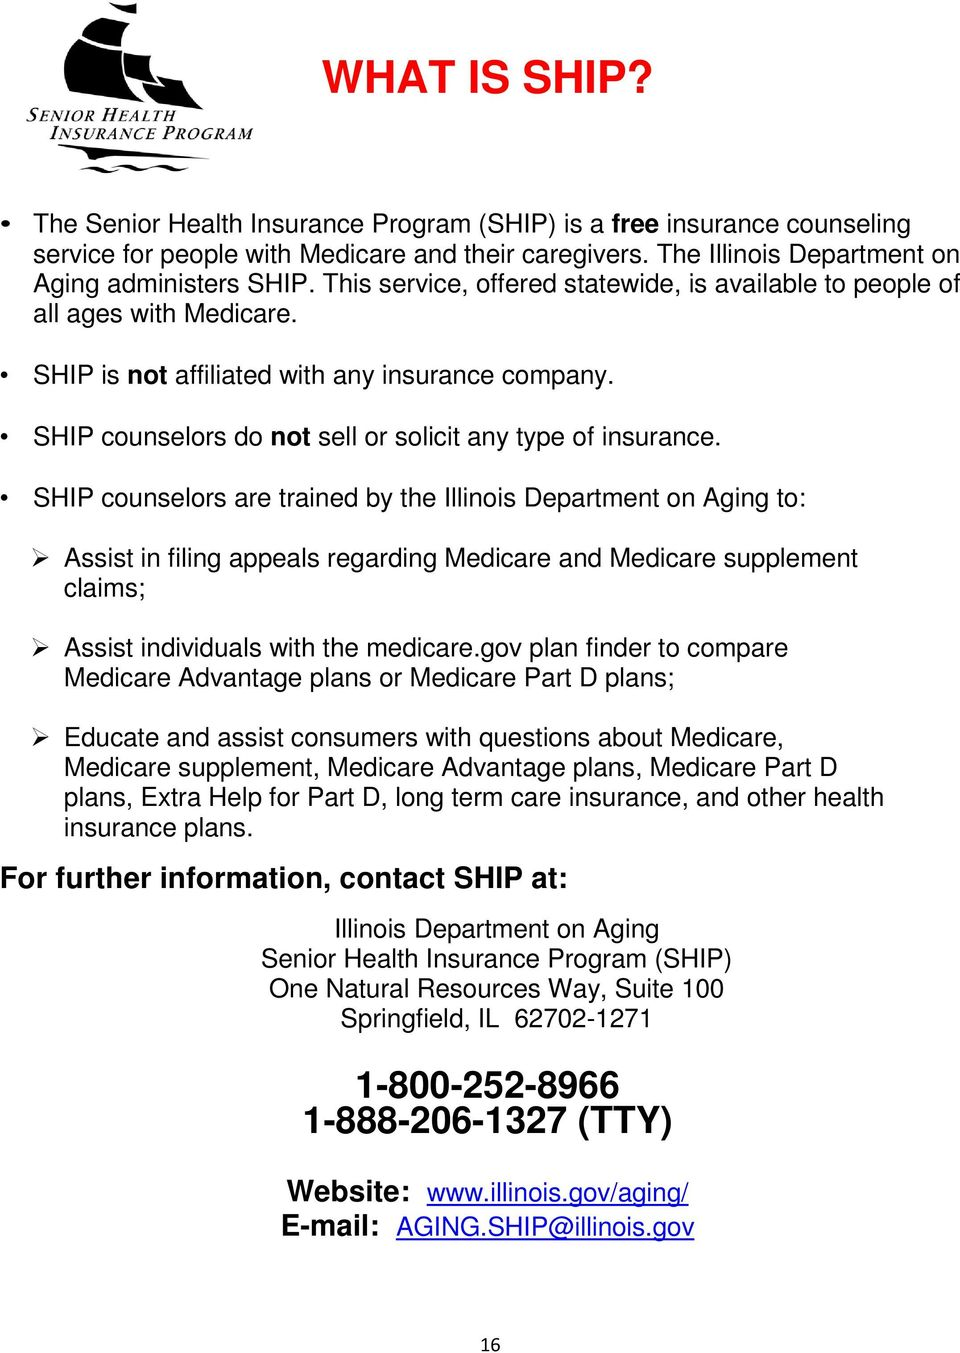 SHIP counselors are trained by the Illinois Department on Aging to: Assist in filing appeals regarding Medicare and Medicare supplement claims; Assist individuals with the medicare.